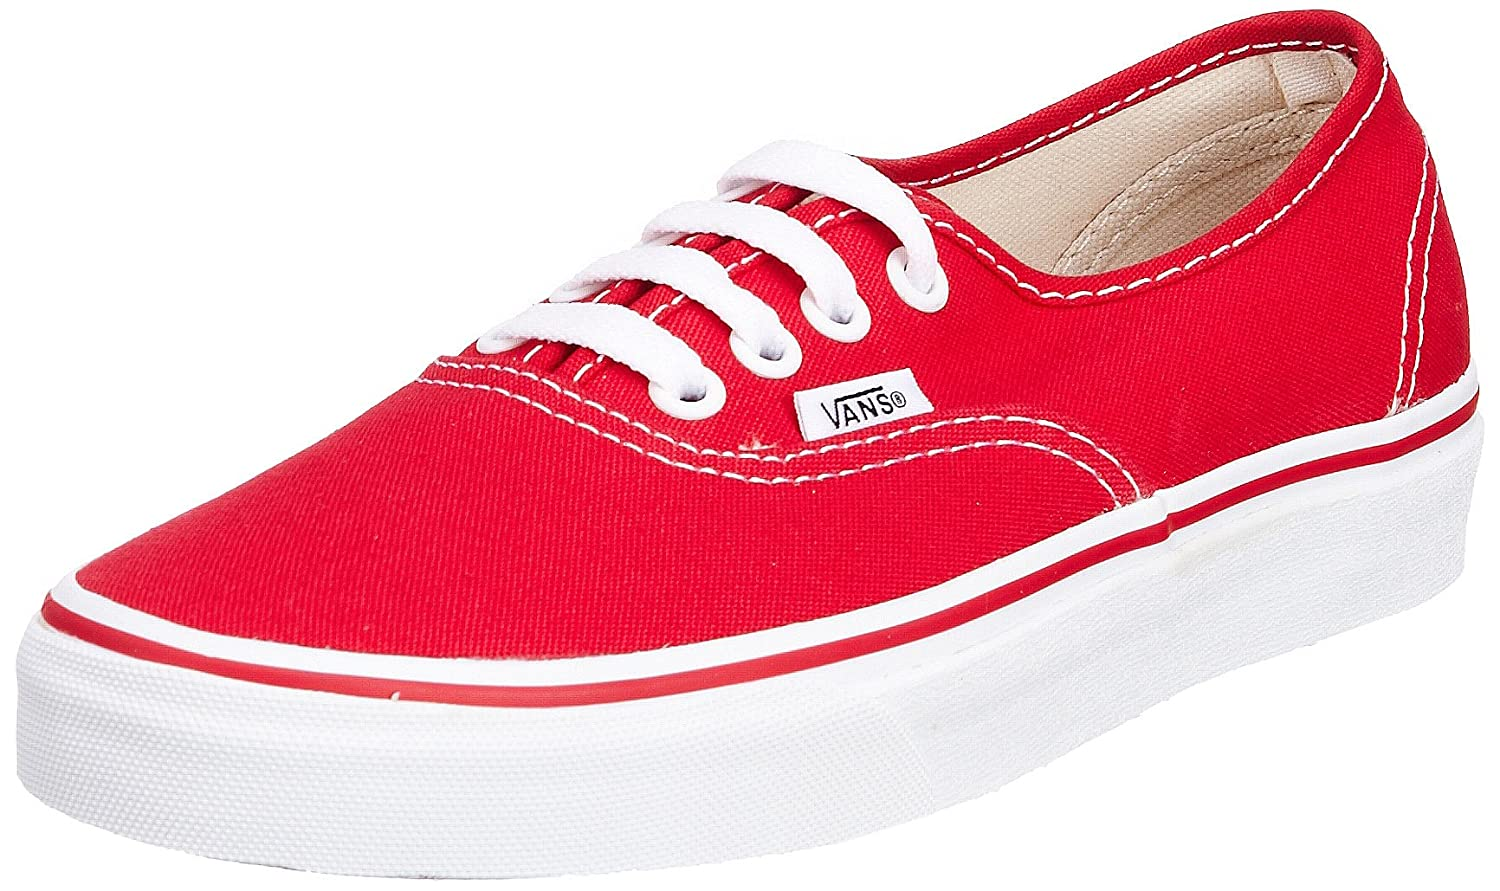 [バンズ] VANS VANS AUTHENTIC VEE3 B01K4HDJ7E 5 D(M) US|レッド レッド 5 D(M) US